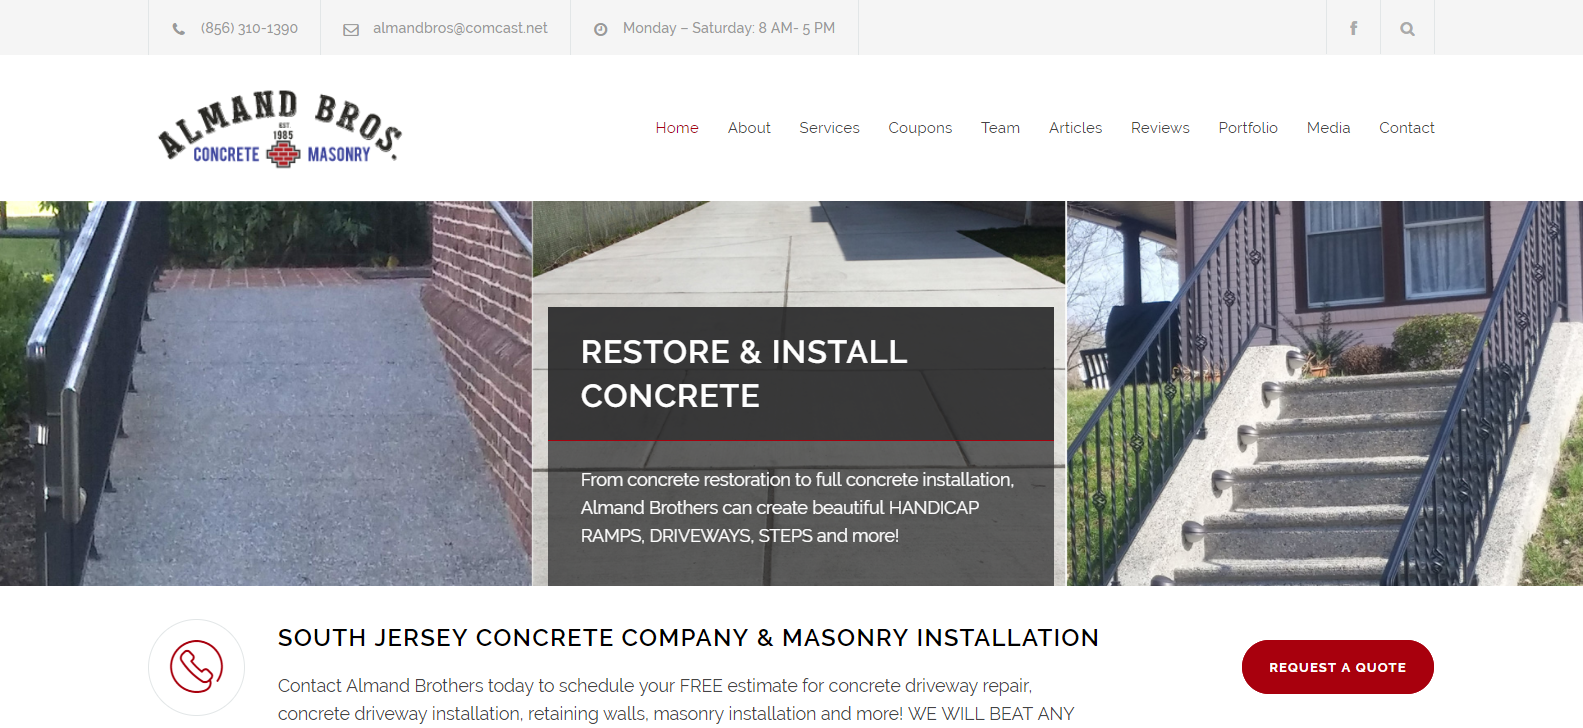 Almand Brothers South Jersey Concrete Contractor Masonry Installation Company